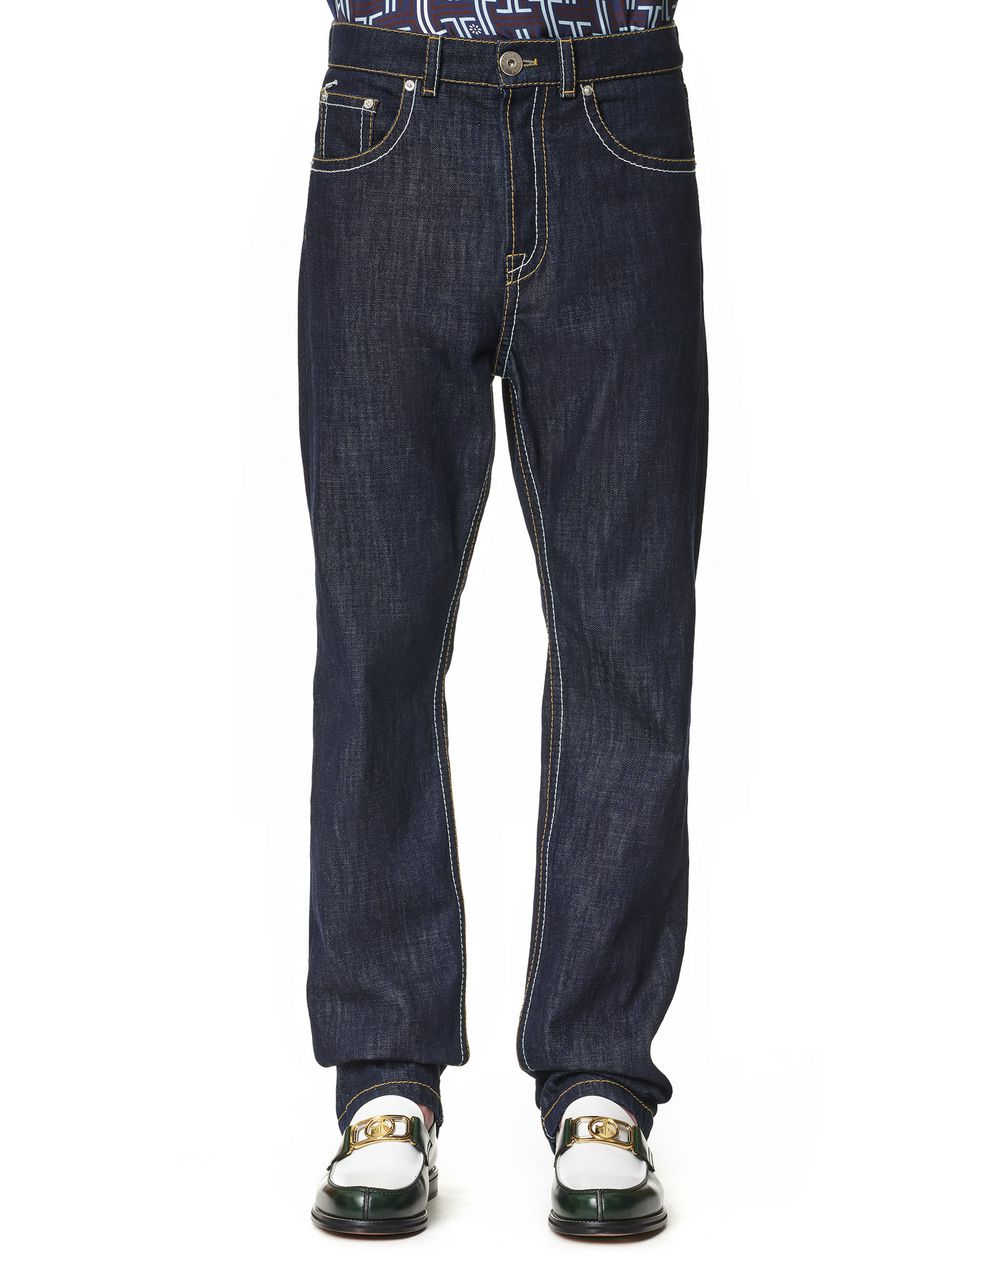 5 POCKETS DENIM - Lanvin